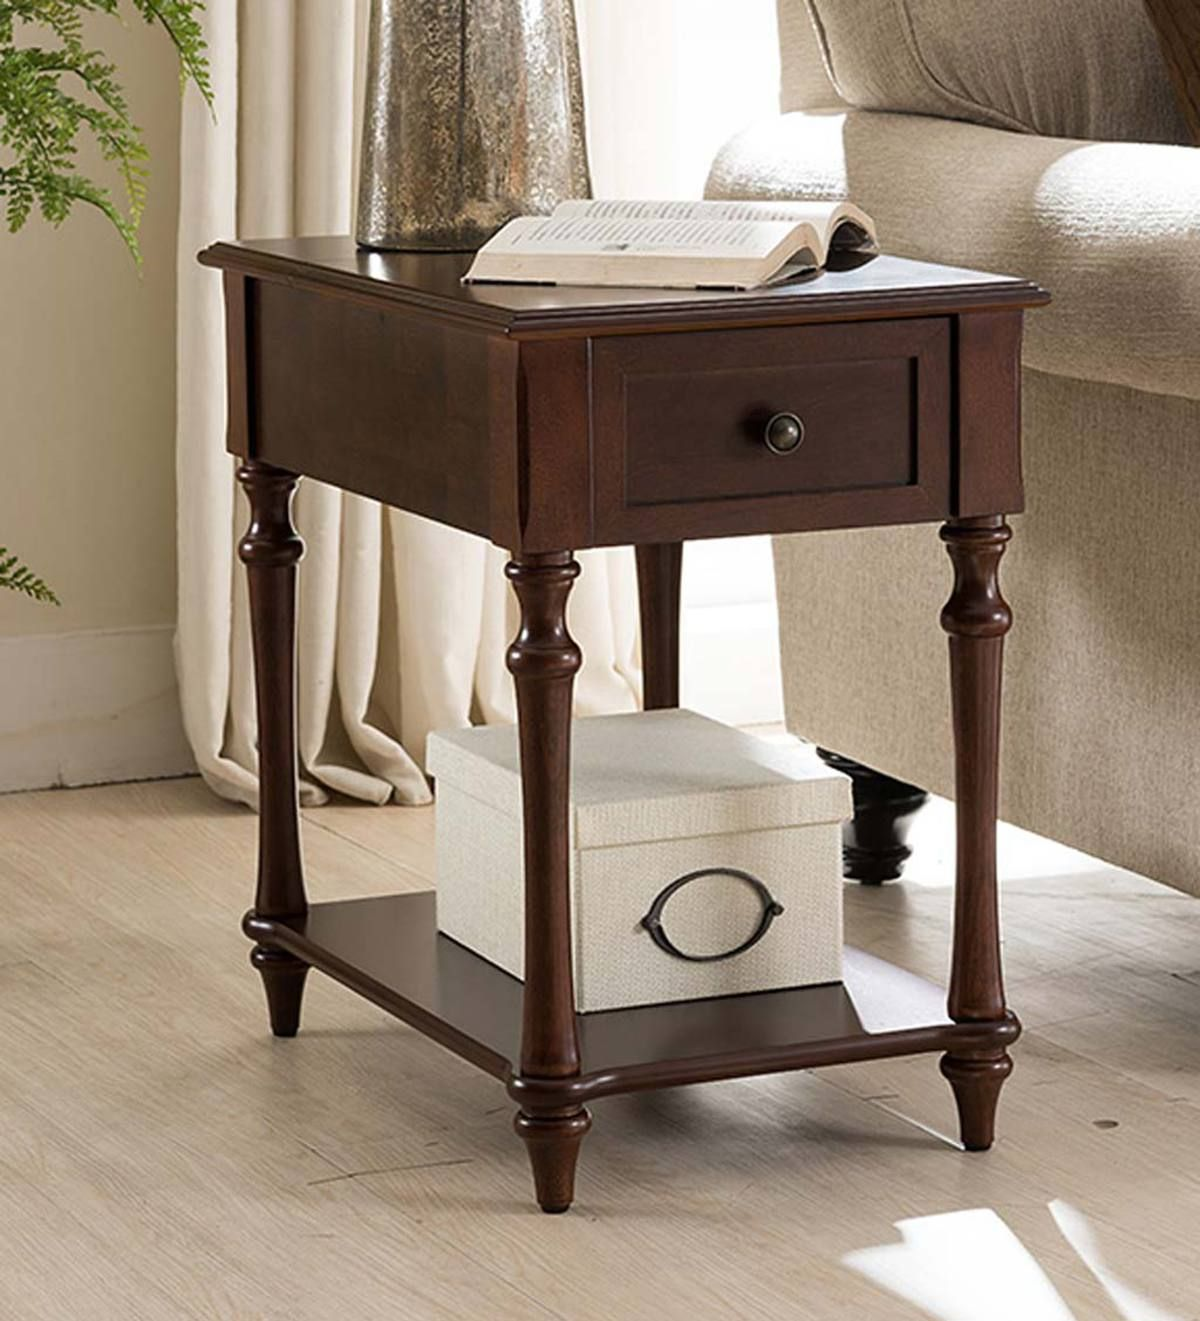 Narrow Side Table With Charging Station